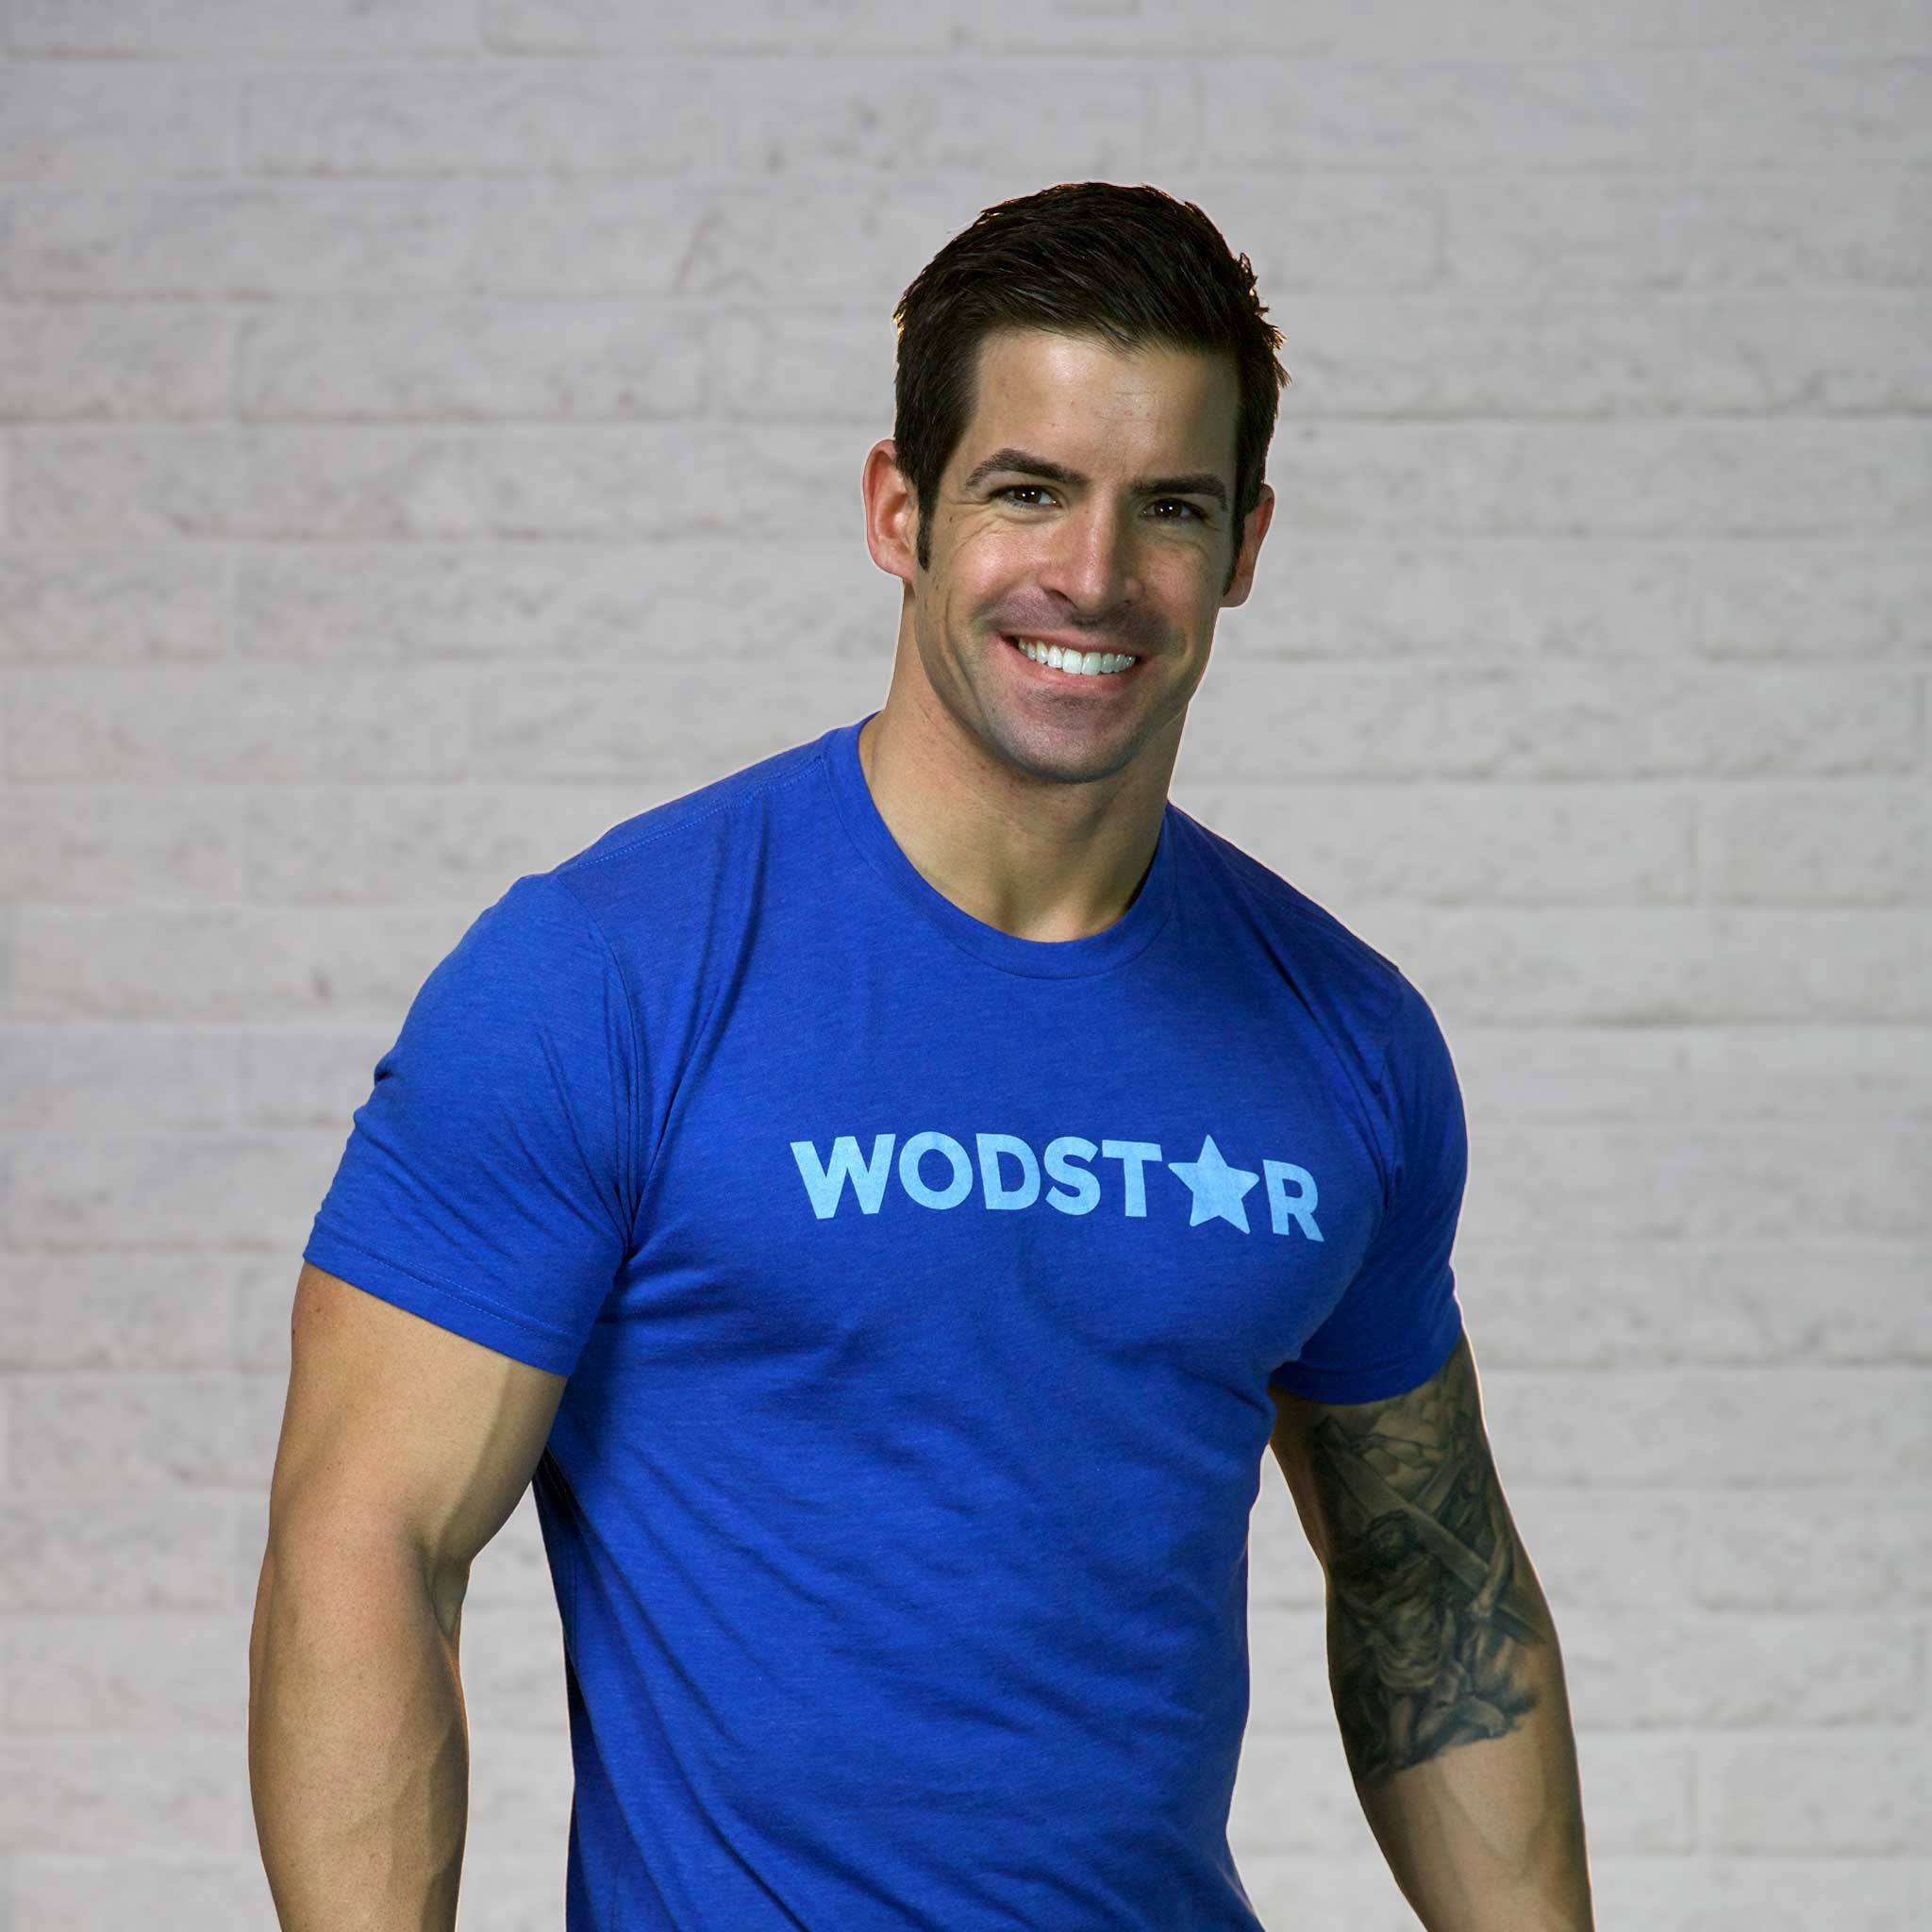 Men's Wodstar Workout T-Shirts of Various Colors